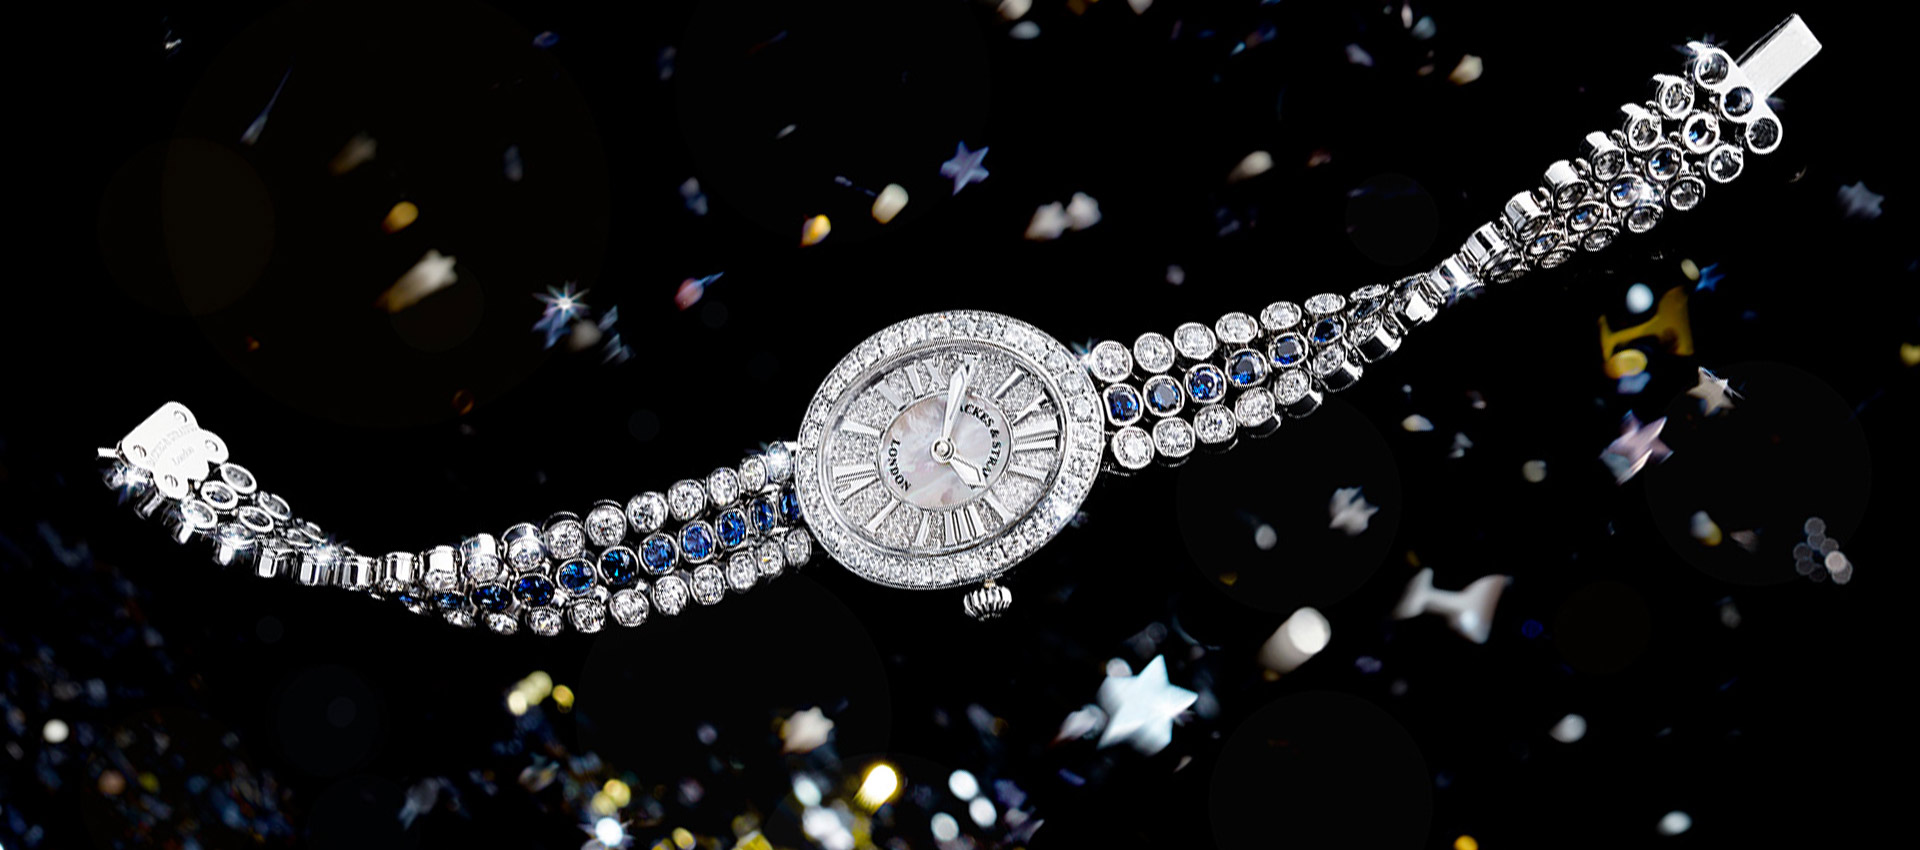 Regent Duchess blue velvet diamond bespoke watch for ladies